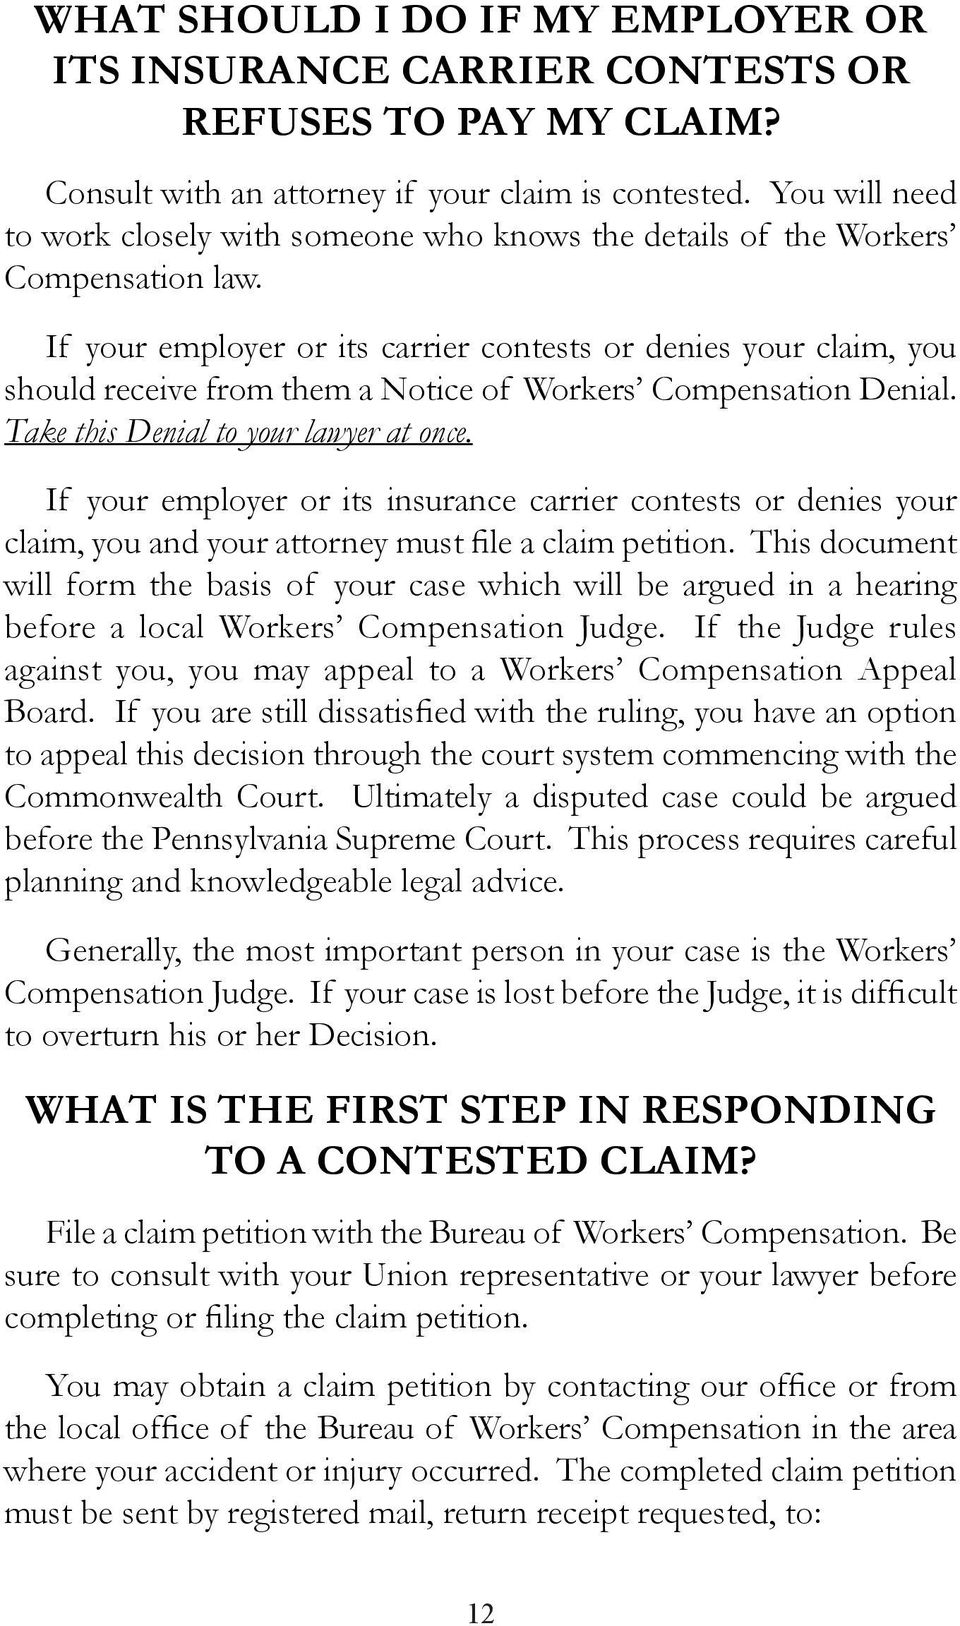 If your employer or its carrier contests or denies your claim, you should receive from them a Notice of Workers Compensation Denial. Take this Denial to your lawyer at once.